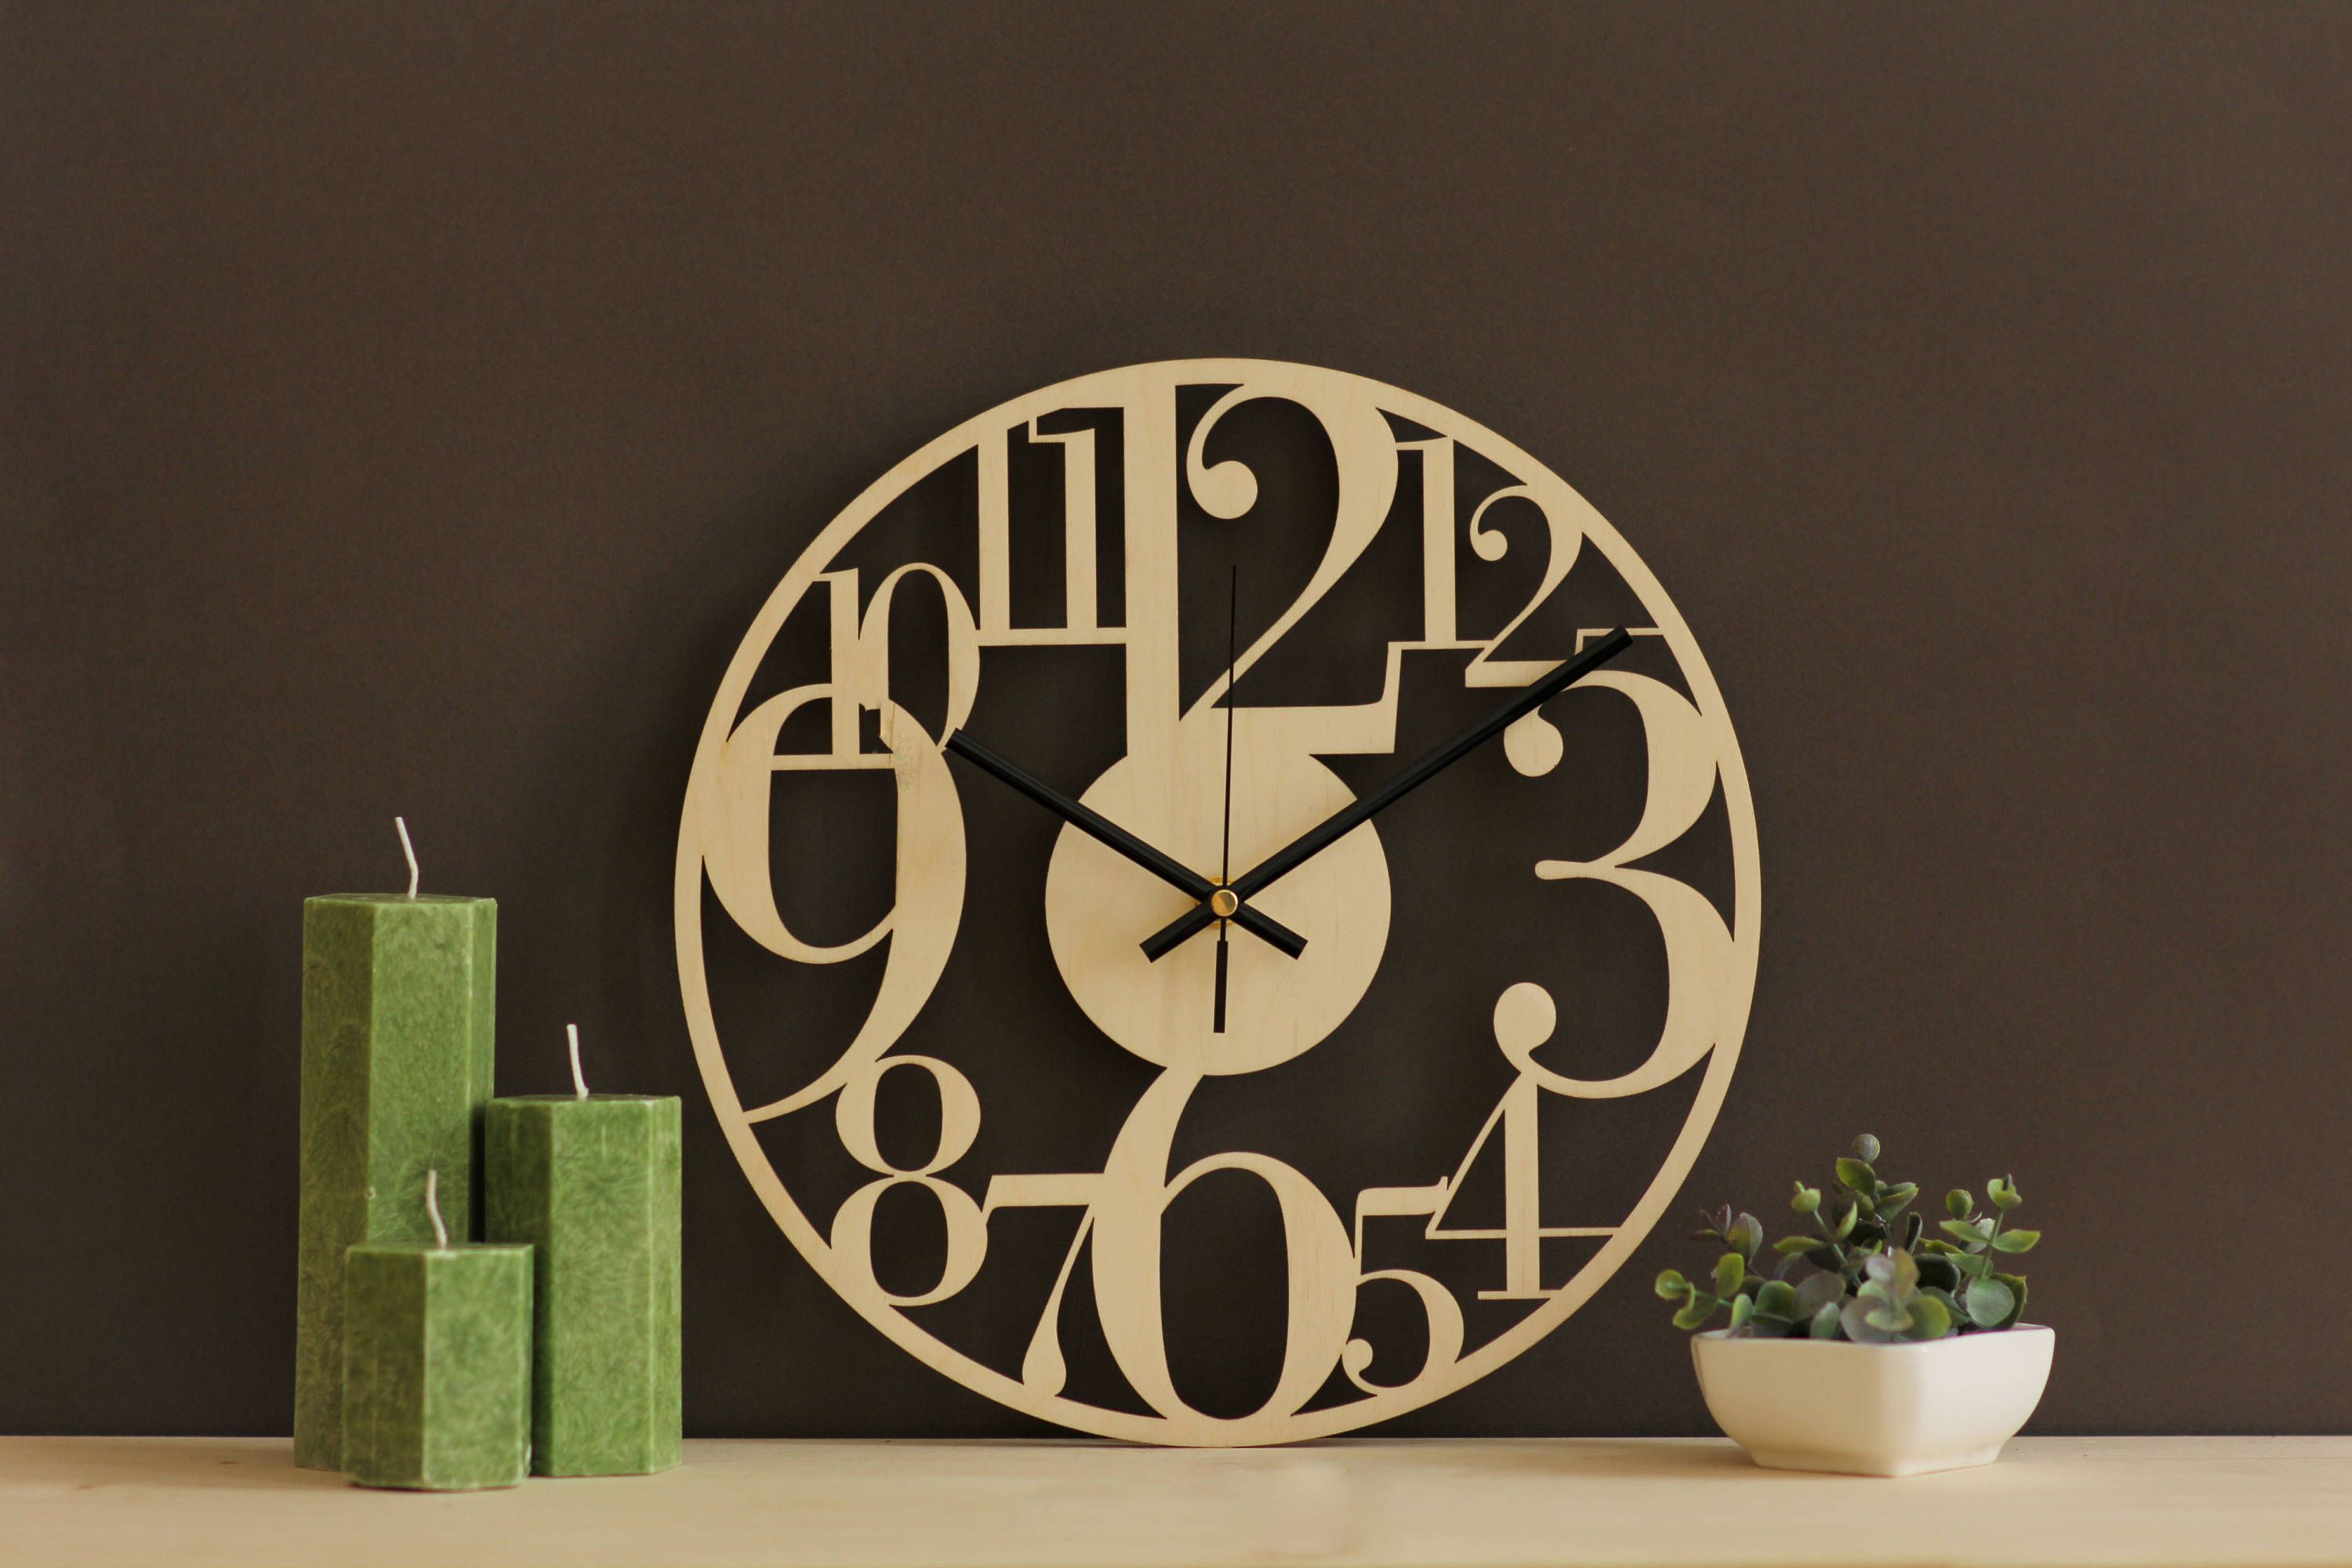 Large Numbers Wall Clock Its 11 5 29 Cm Diameter Perfect Size To Decorate Your Favorite Wall Our Wo Rustic Wall Clocks Wood Wall Clock Unique Wall Clocks